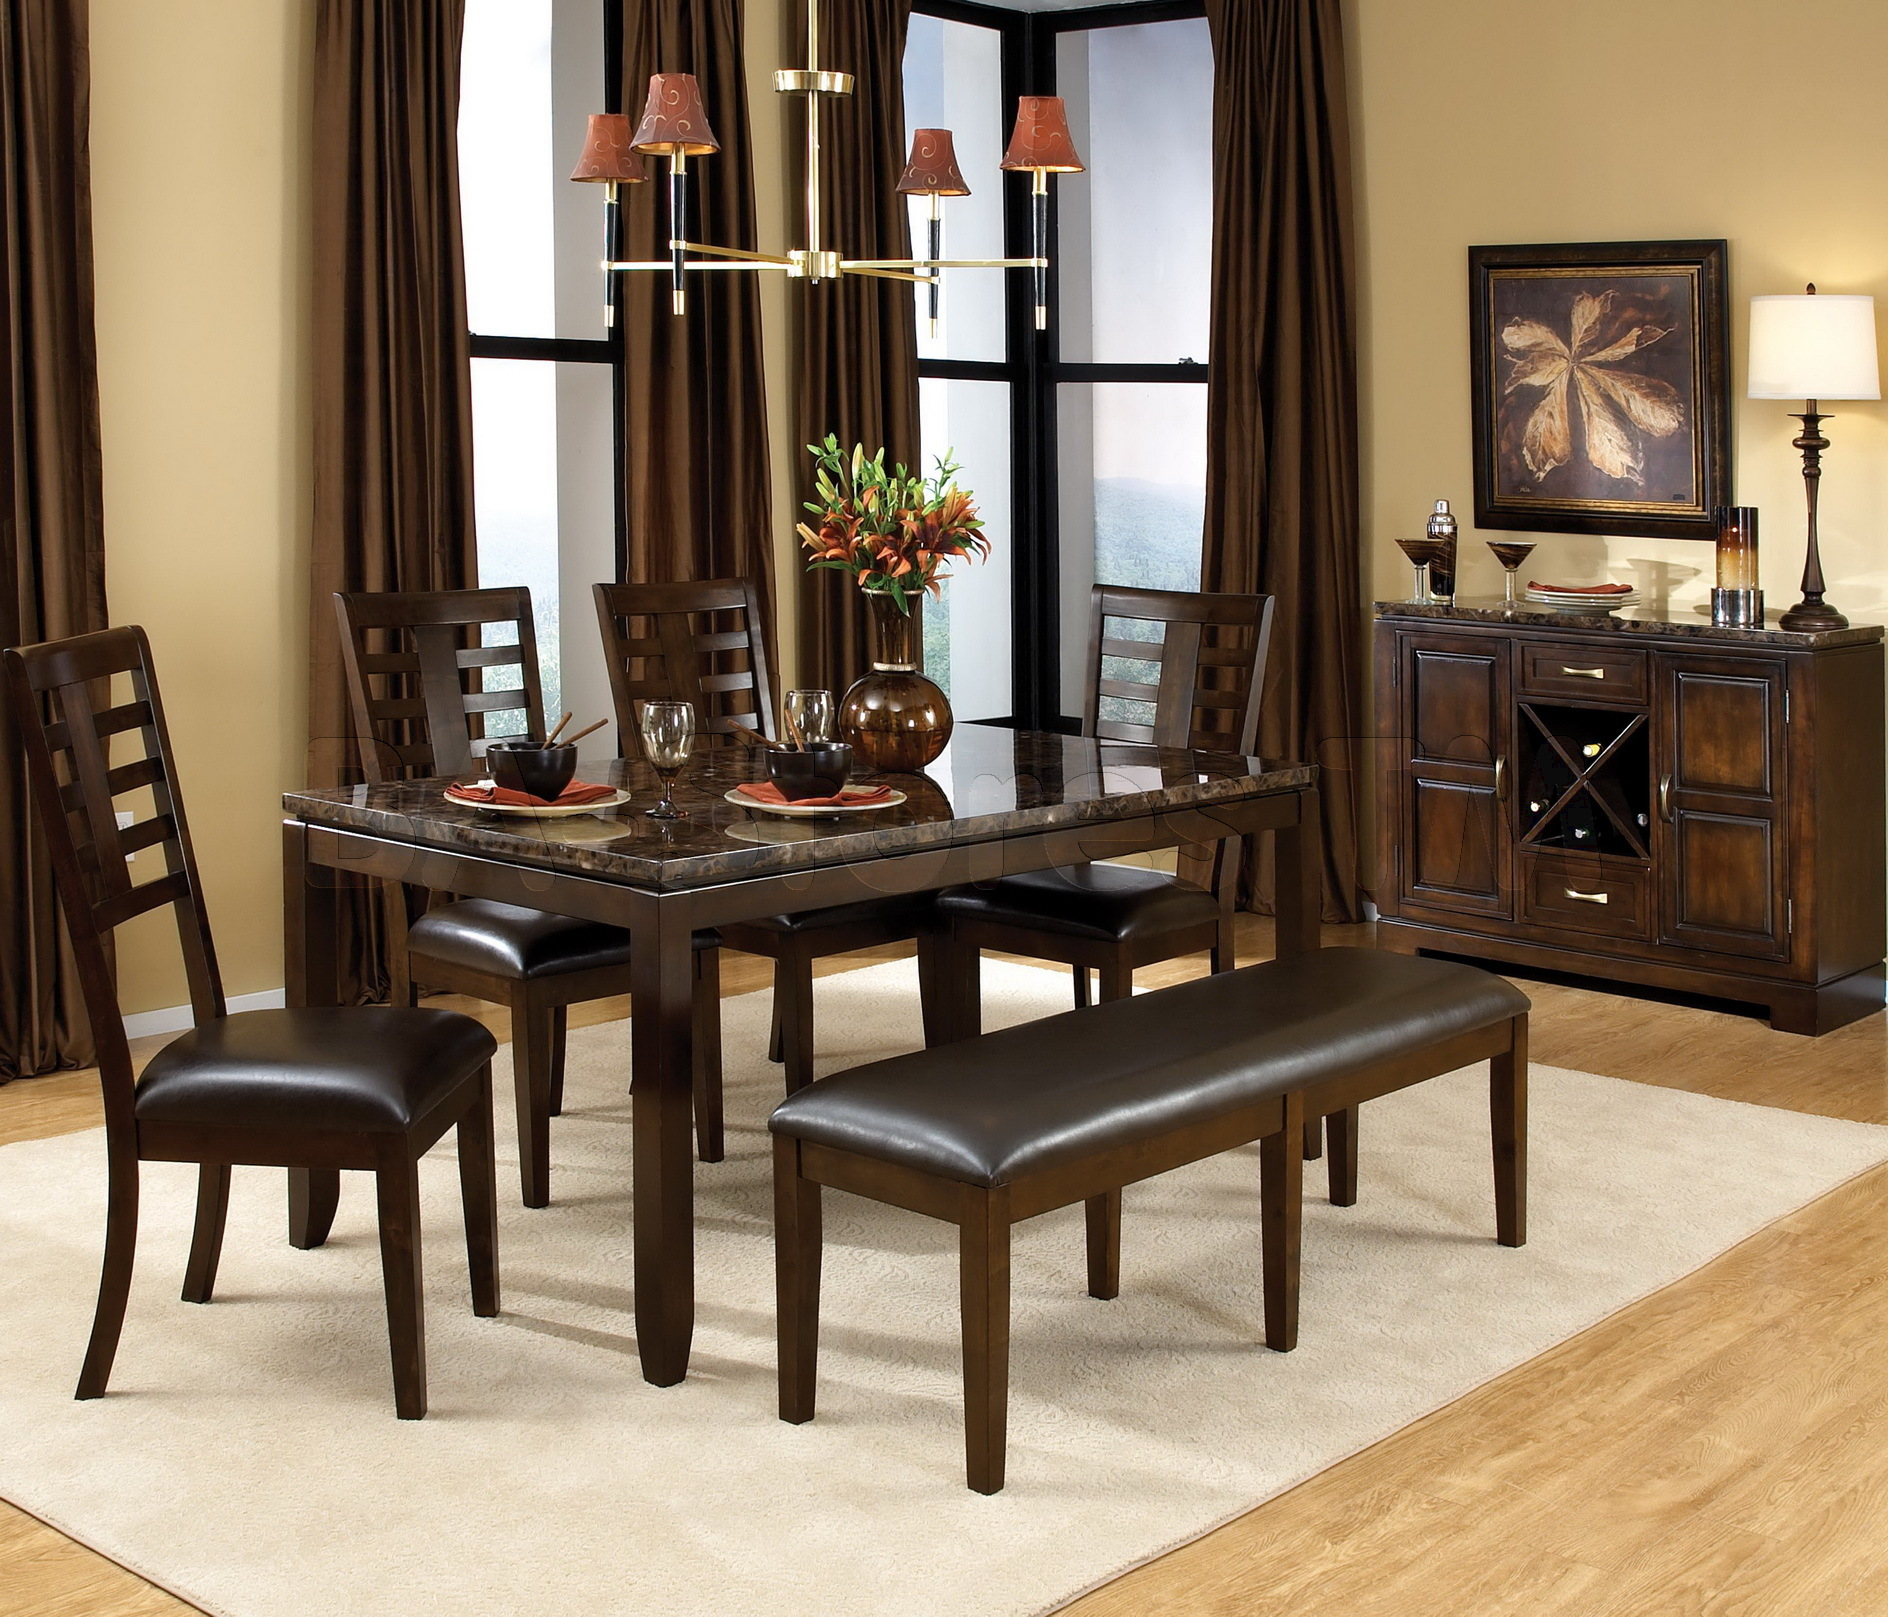 Dinner Table Bench: Dining Room Table With Bench Seat